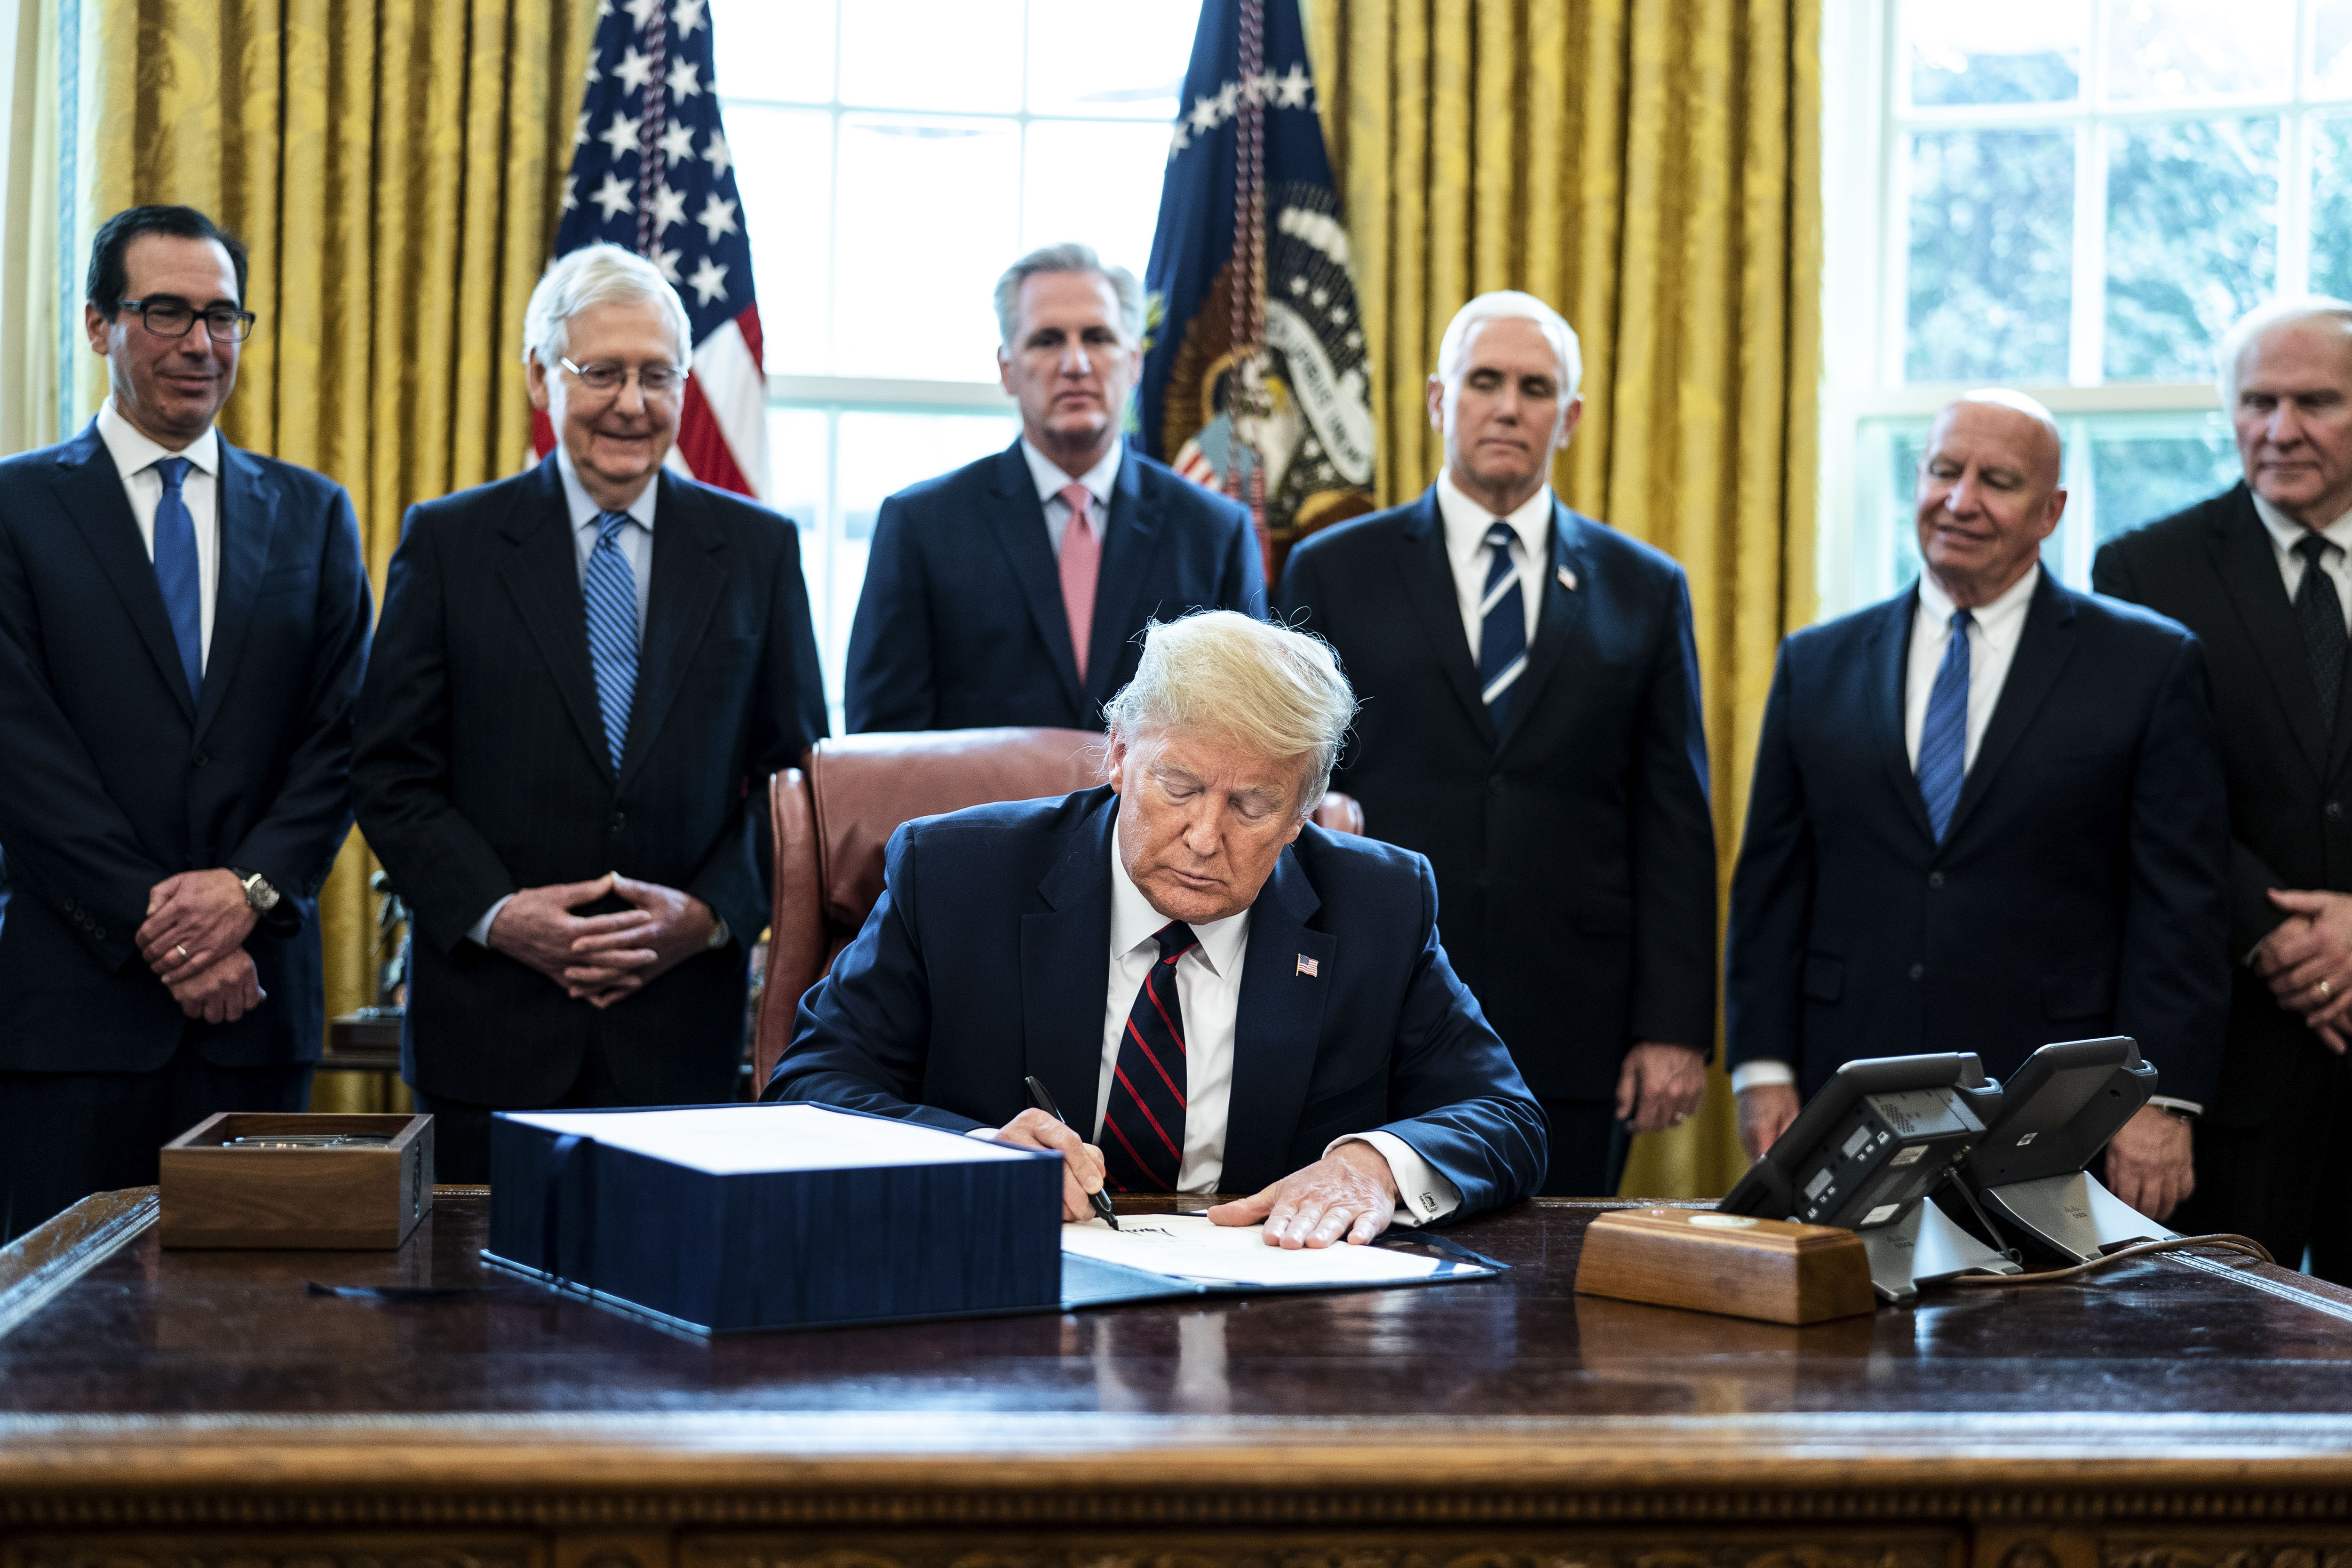 President Donald Trump signs the Coronavirus Aid, Relief, and Economic Security (CARES) Act, in the Oval Office of the White House in Washington, D.C., on Friday, March 27, 2020.